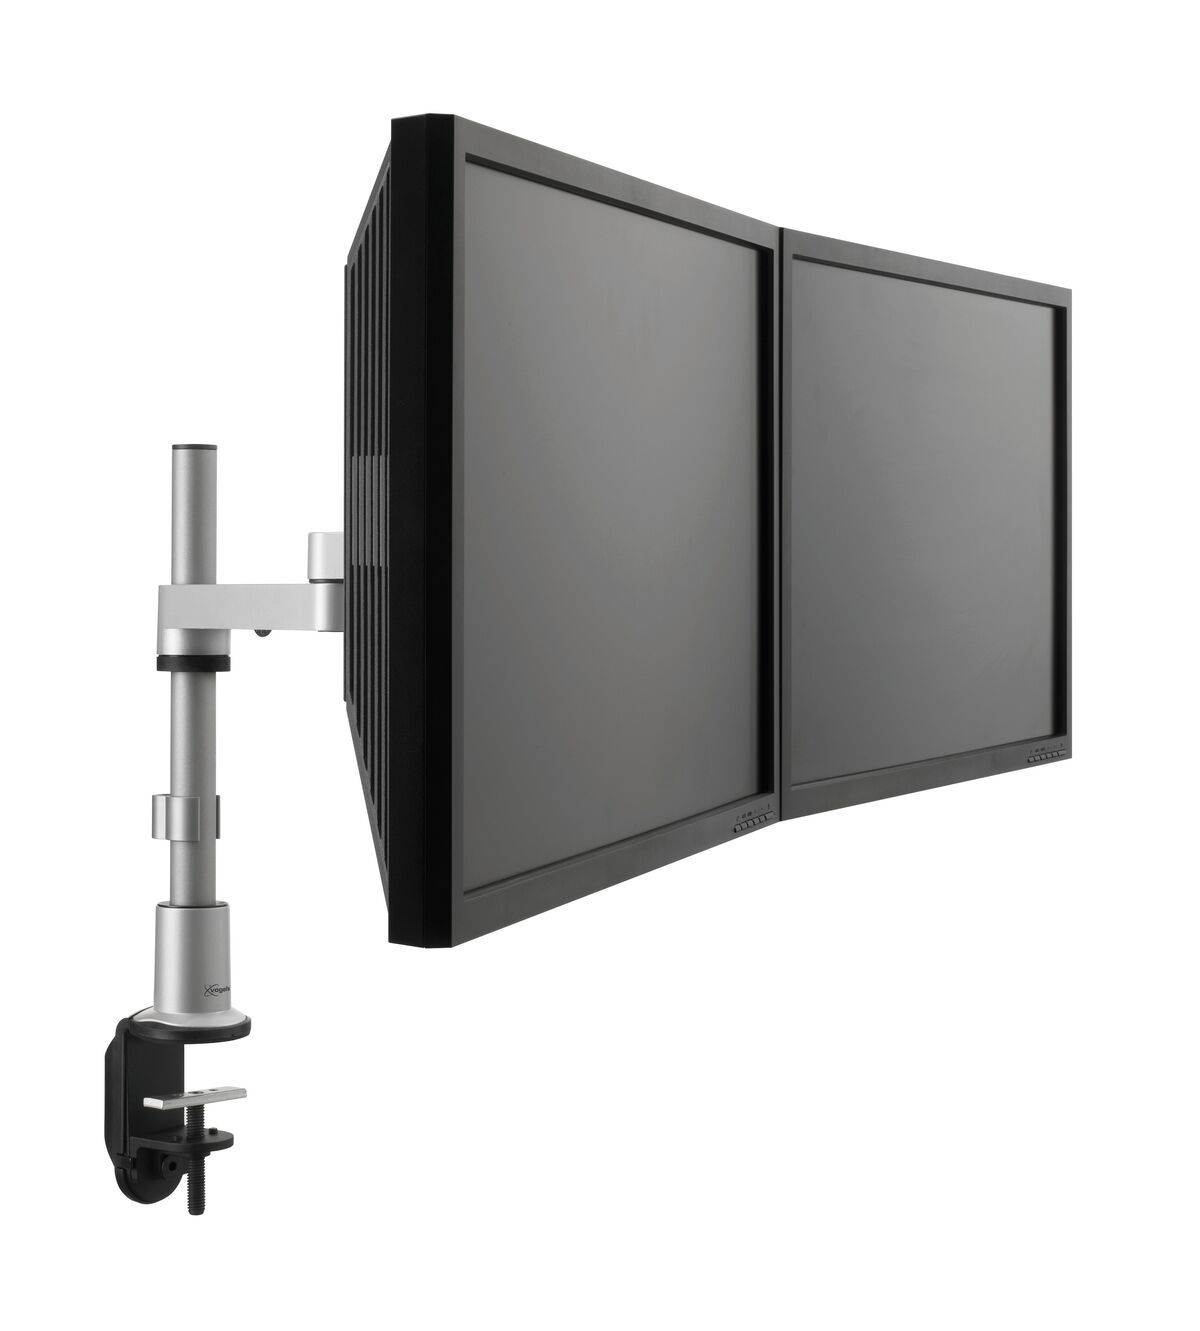 Vogel's PFD 8523 Monitor mount static - For monitors up to 13 kg - Ideally suited for Gaming and (Home) Office - Application